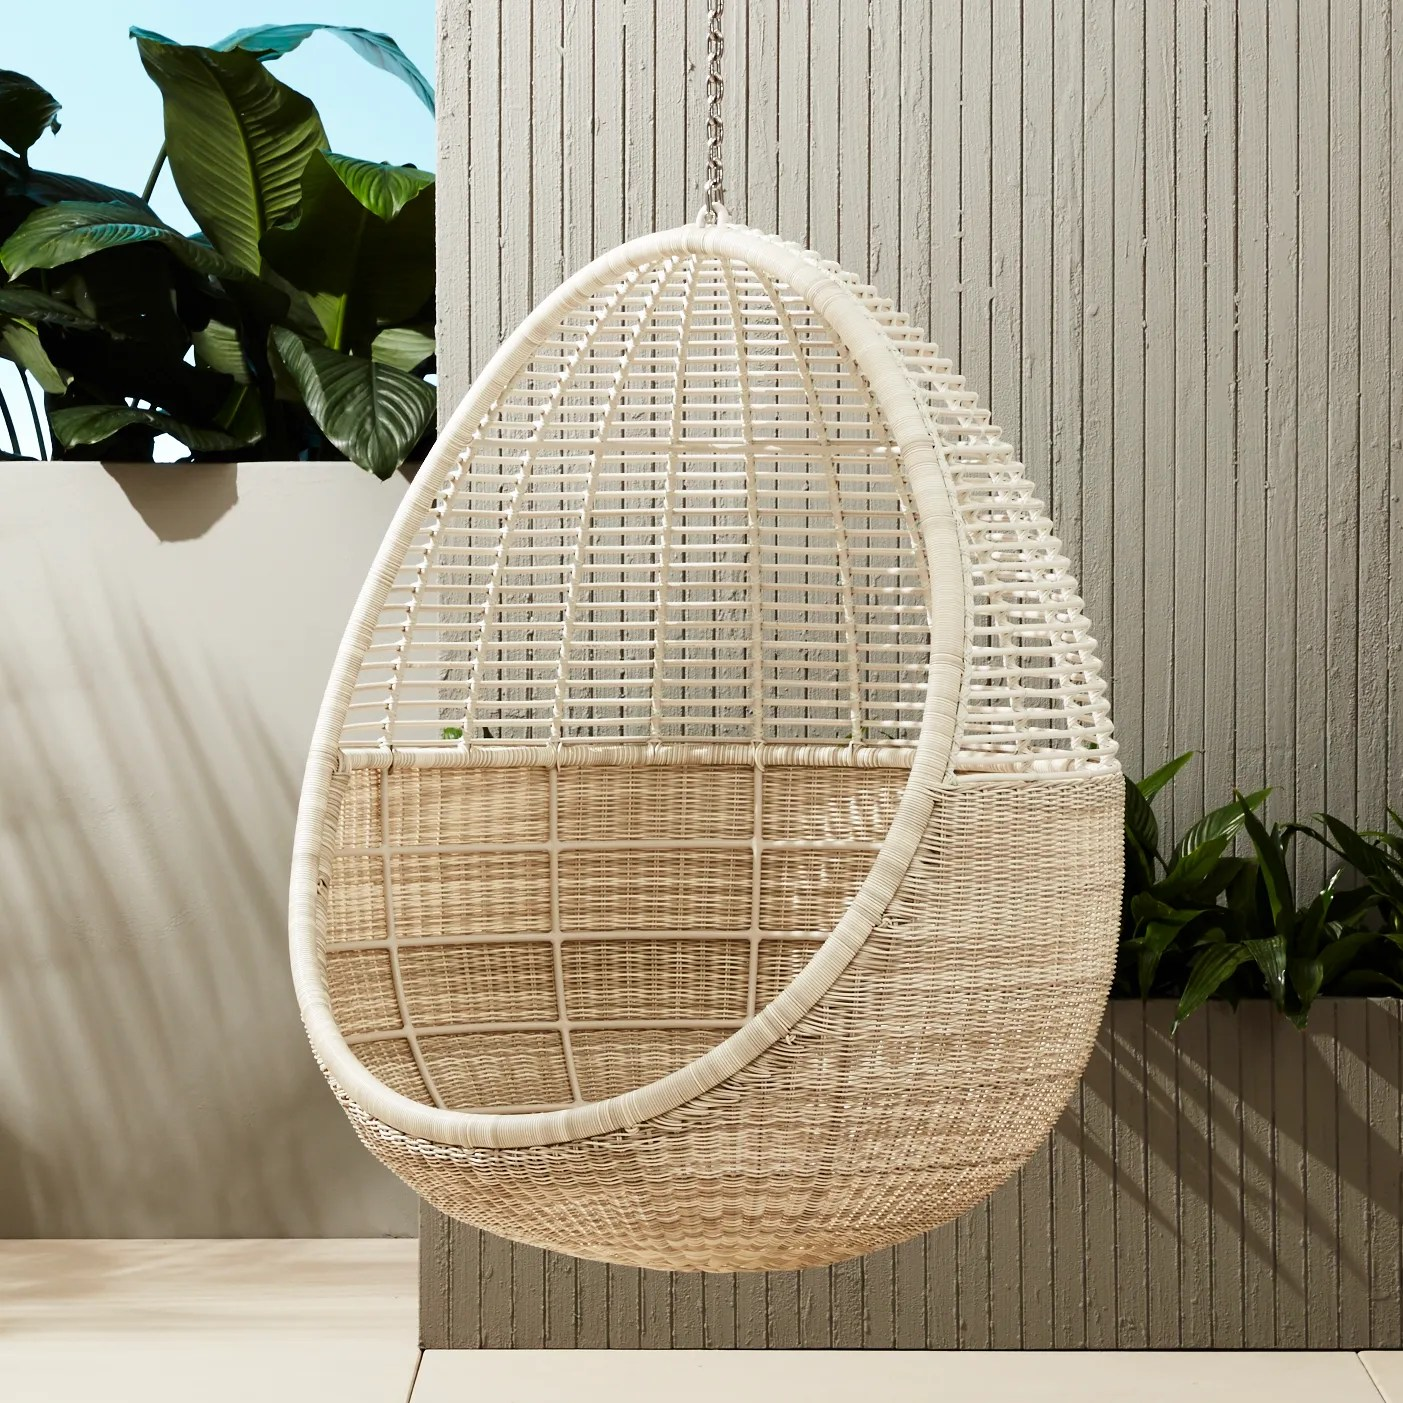 Hanging Outdoor Chairs 11 Hanging Chairs You Ll Never Want To Get Out Of Architectural